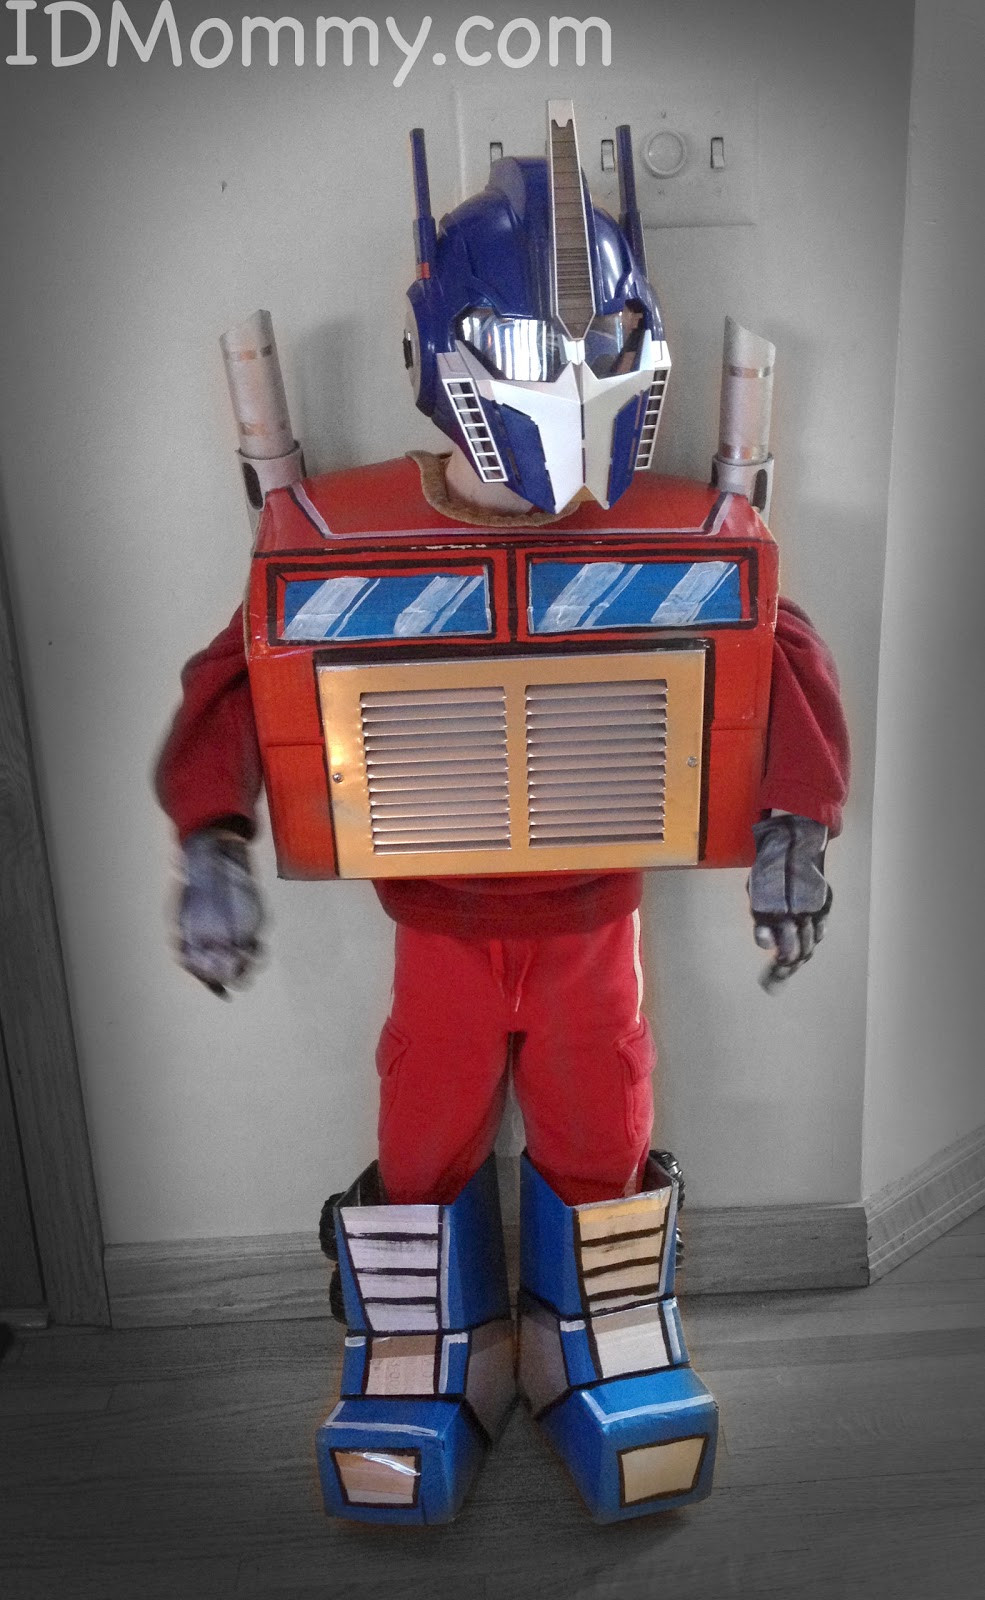 Best ideas about DIY Transformer Costume . Save or Pin ID Mommy DIY Mickey Mouse and Optimus Prime Transformer Now.